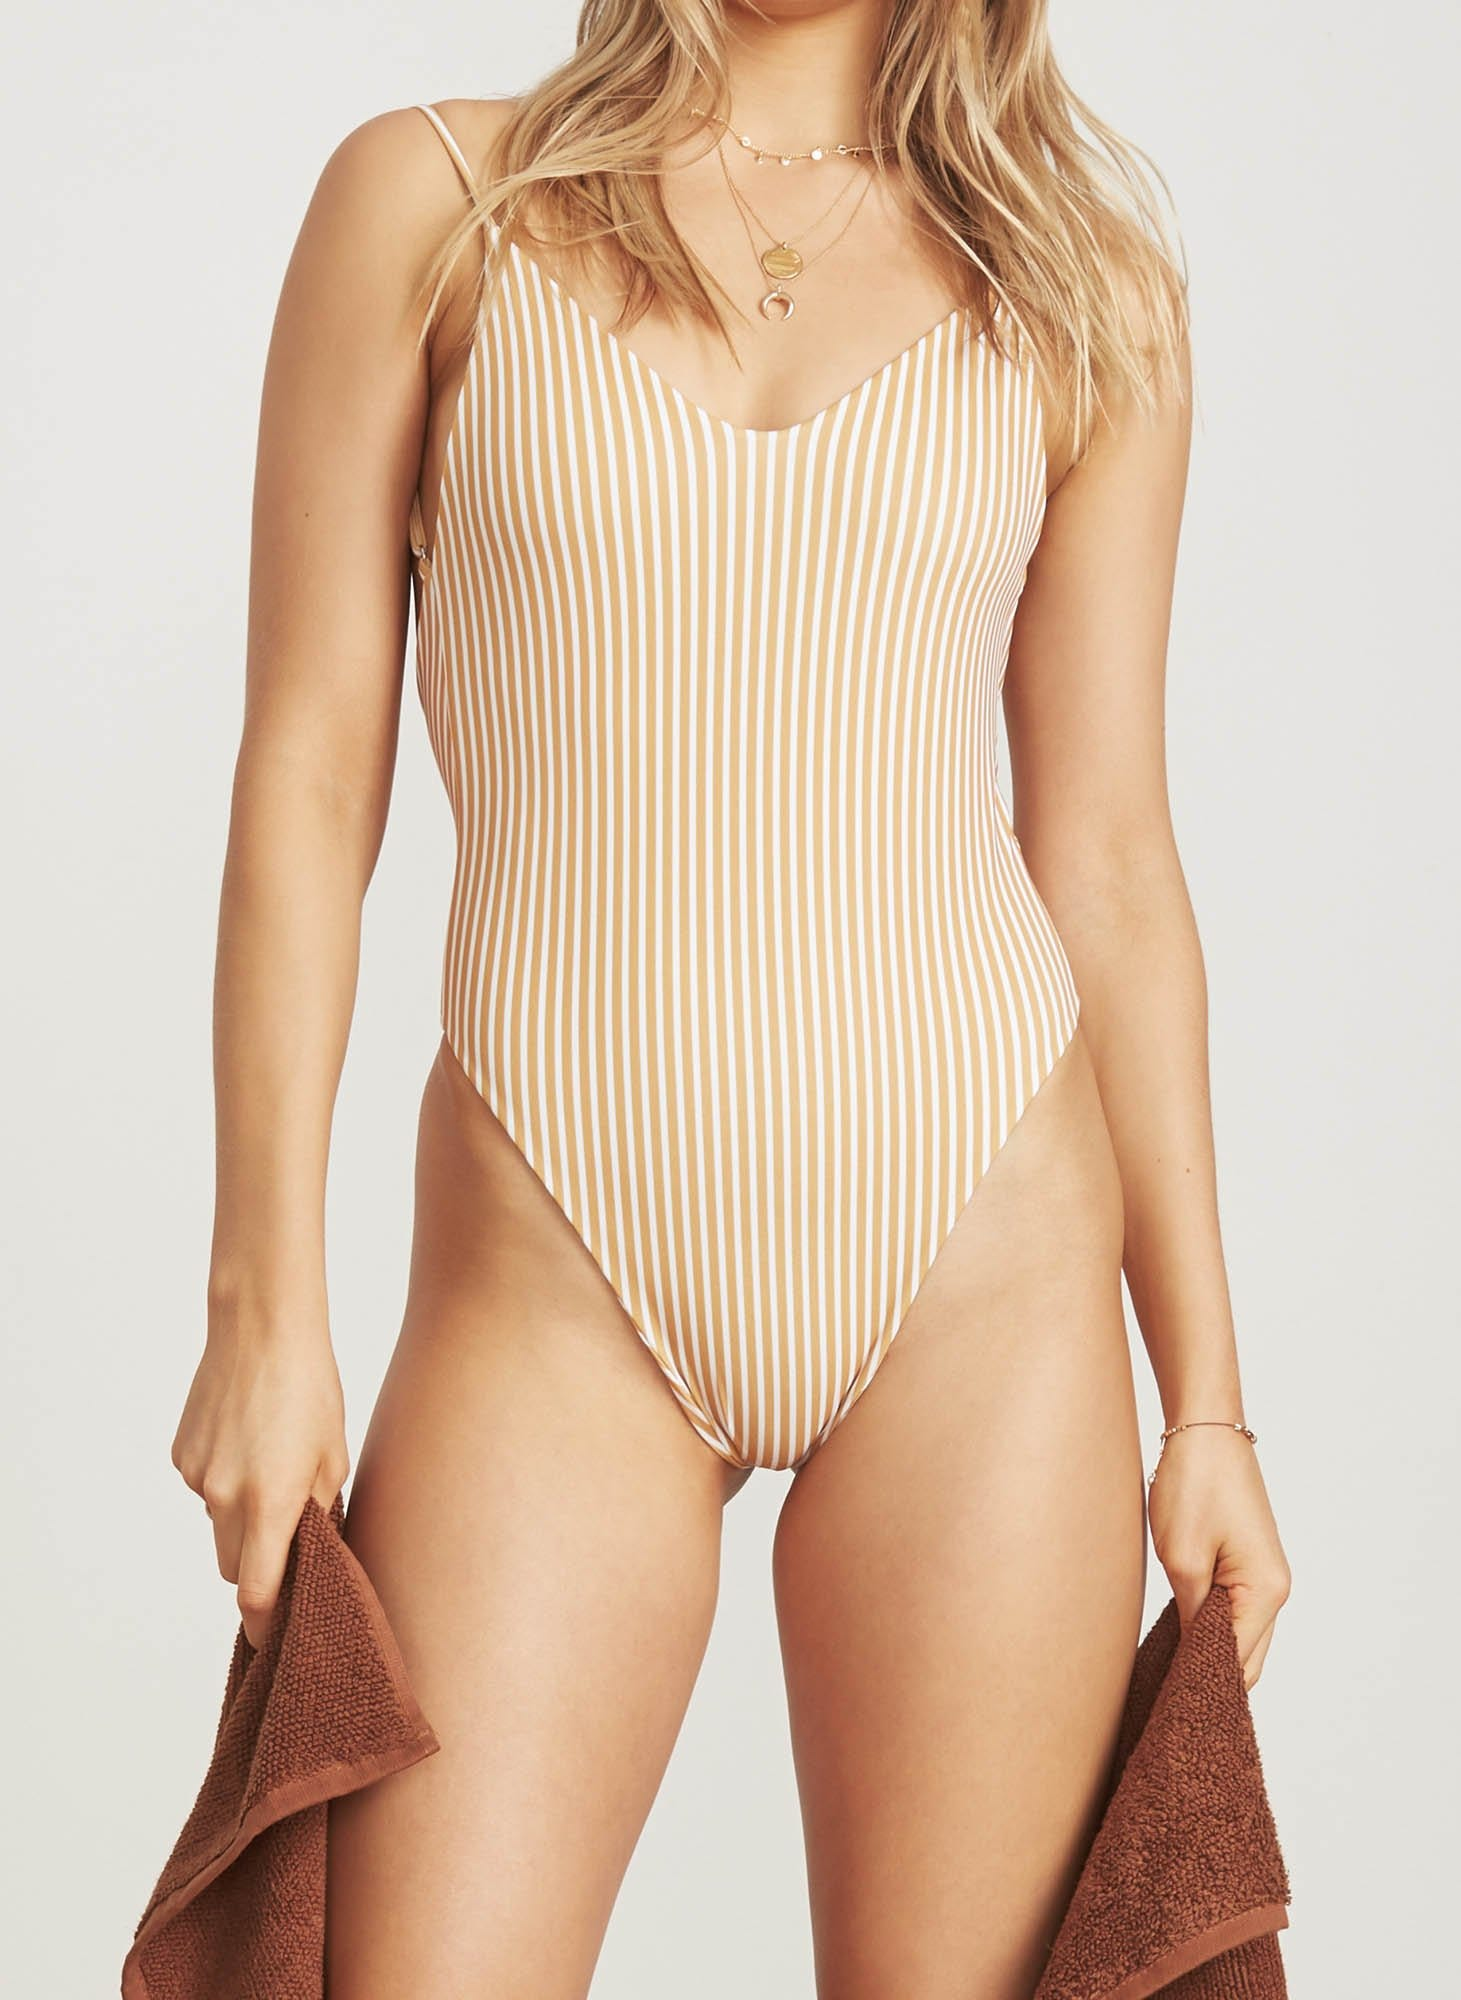 701380478a7 New Swimsuit Brands To Know That Launched In 2018